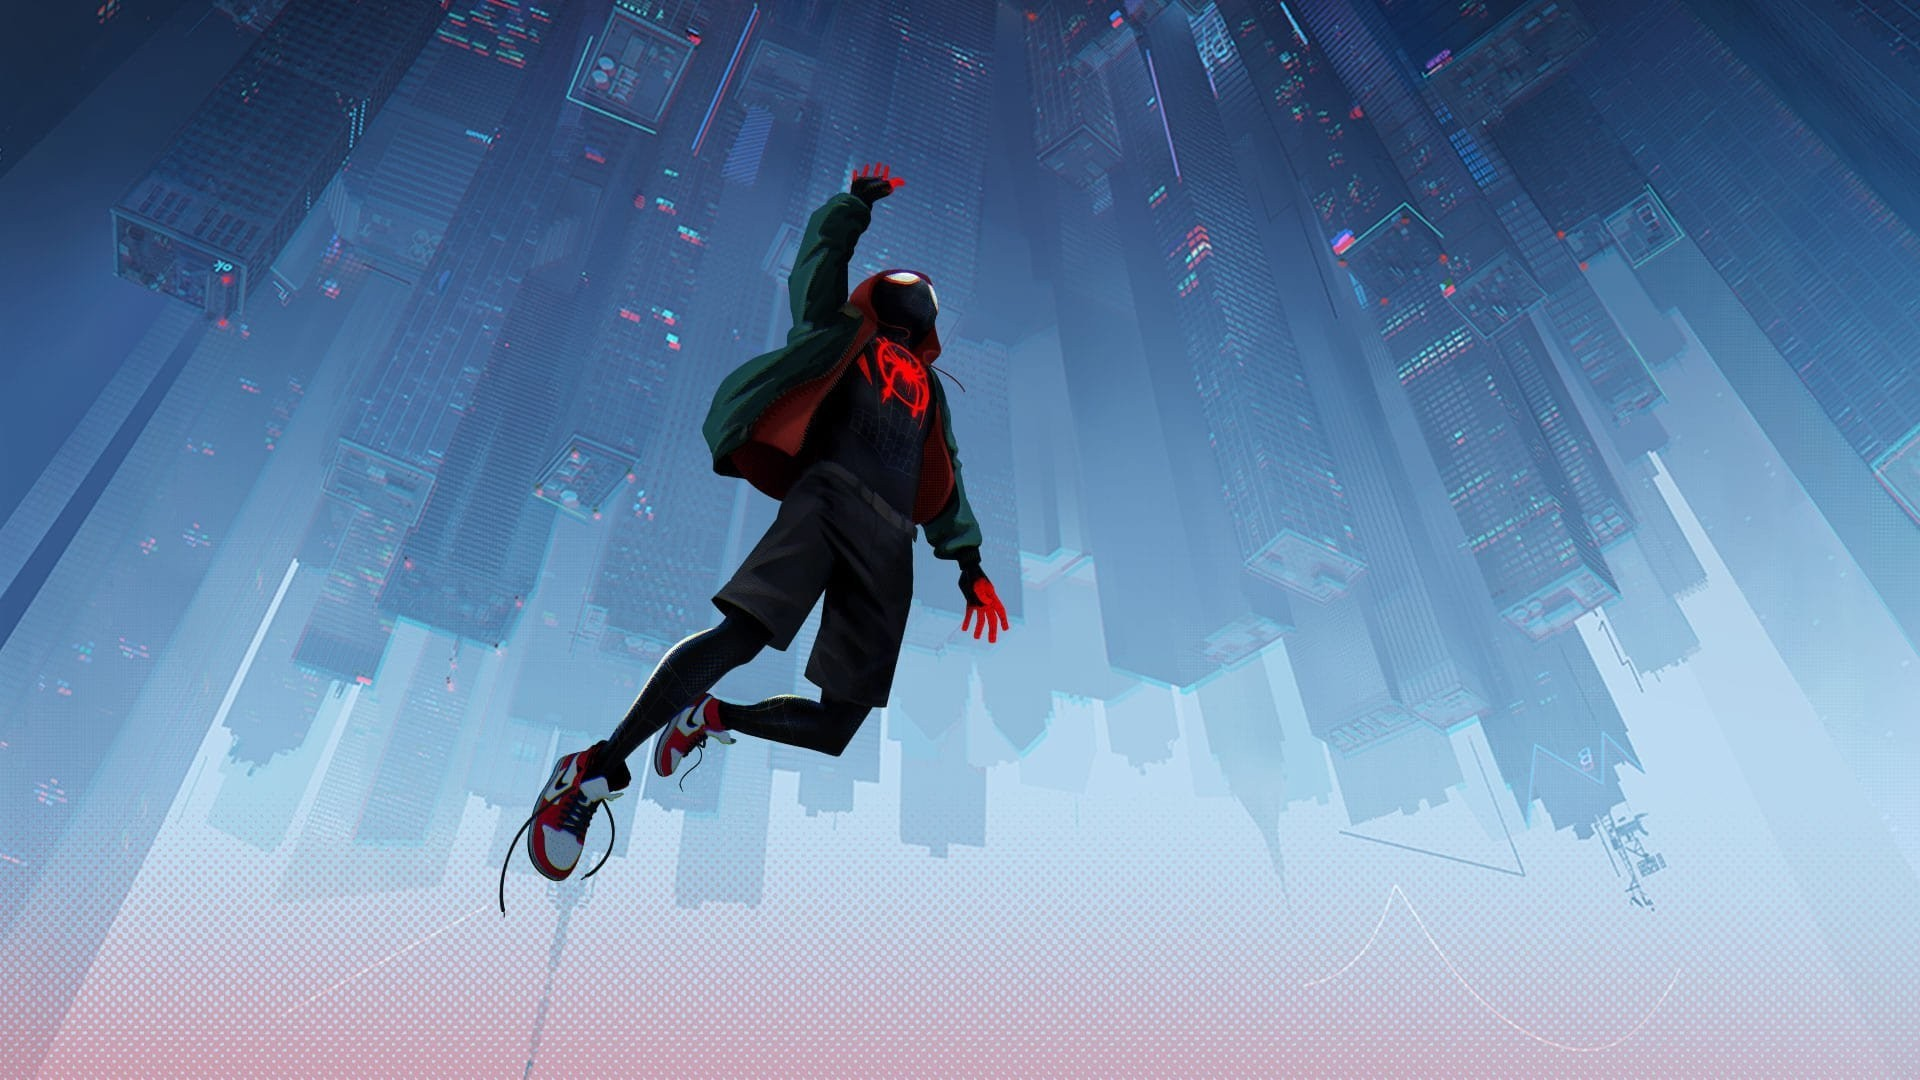 Into The Spider Verse a wallpaper